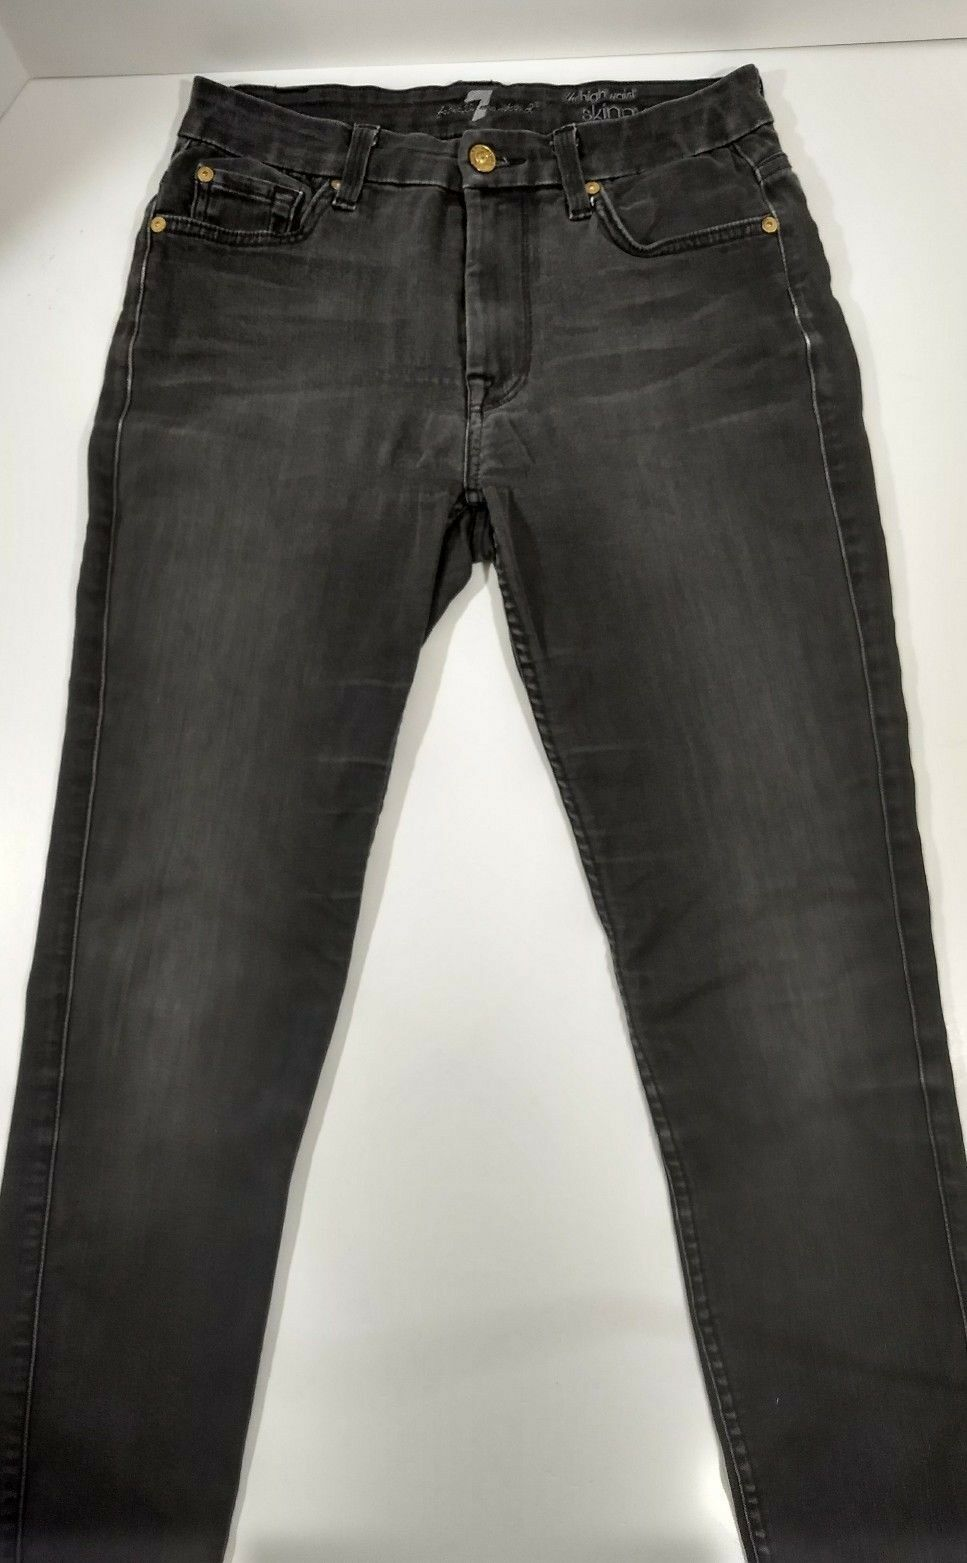 7 Seven For All Mankind High Waist Skinny Ankle in Grey Destroy - Sz 27 30